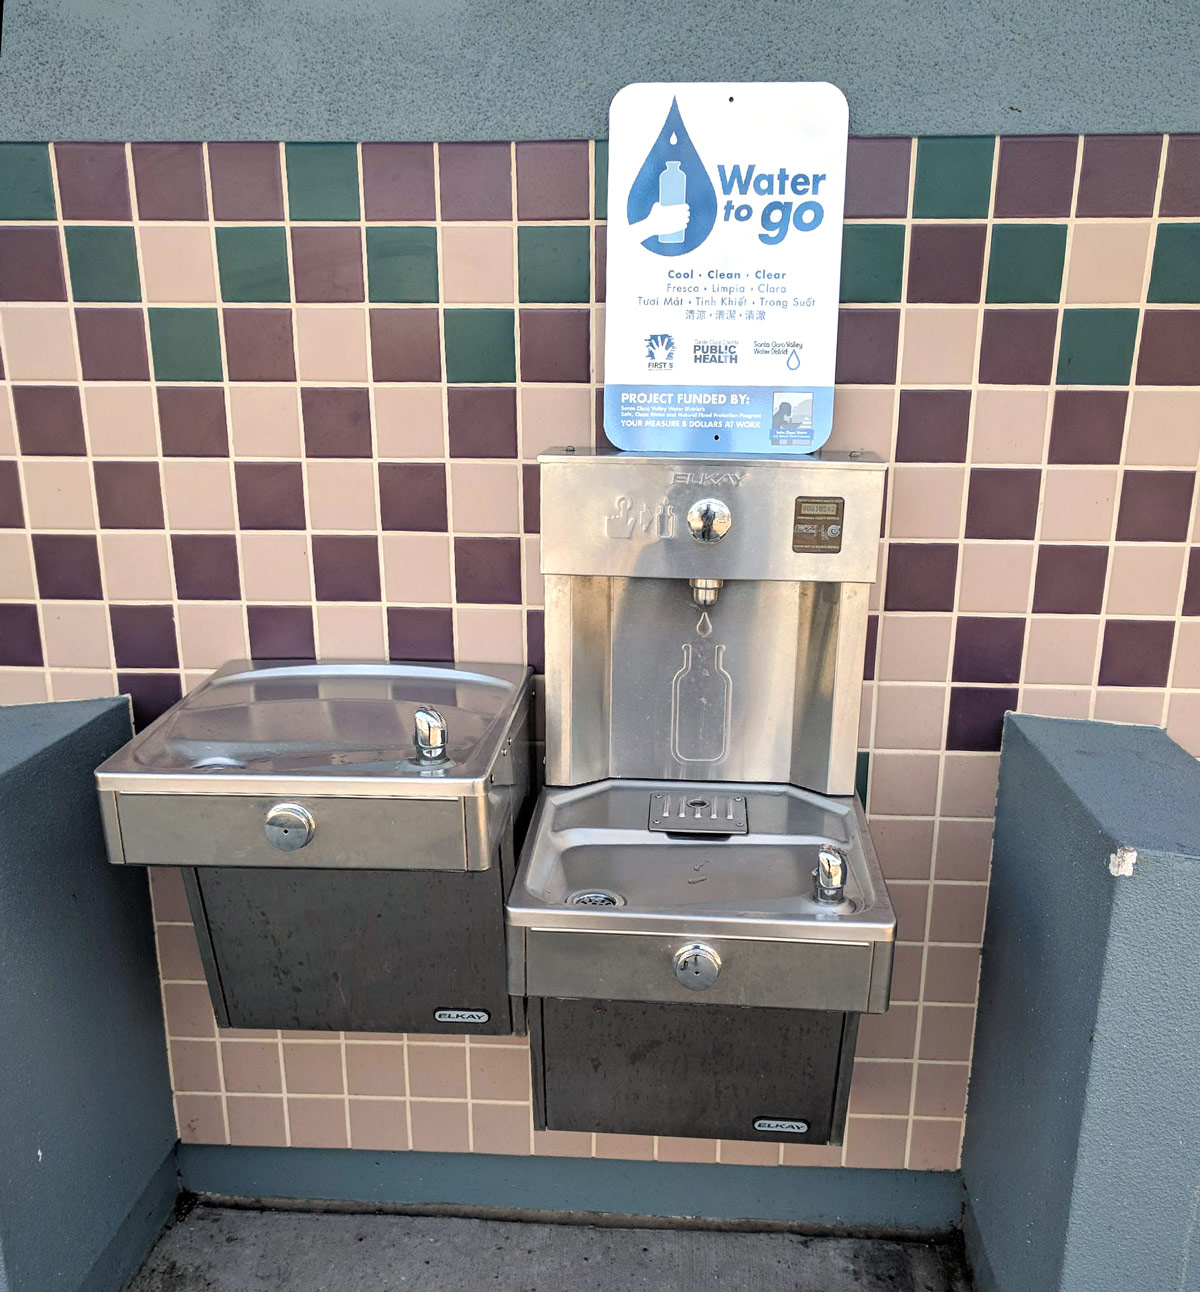 Water to Go station